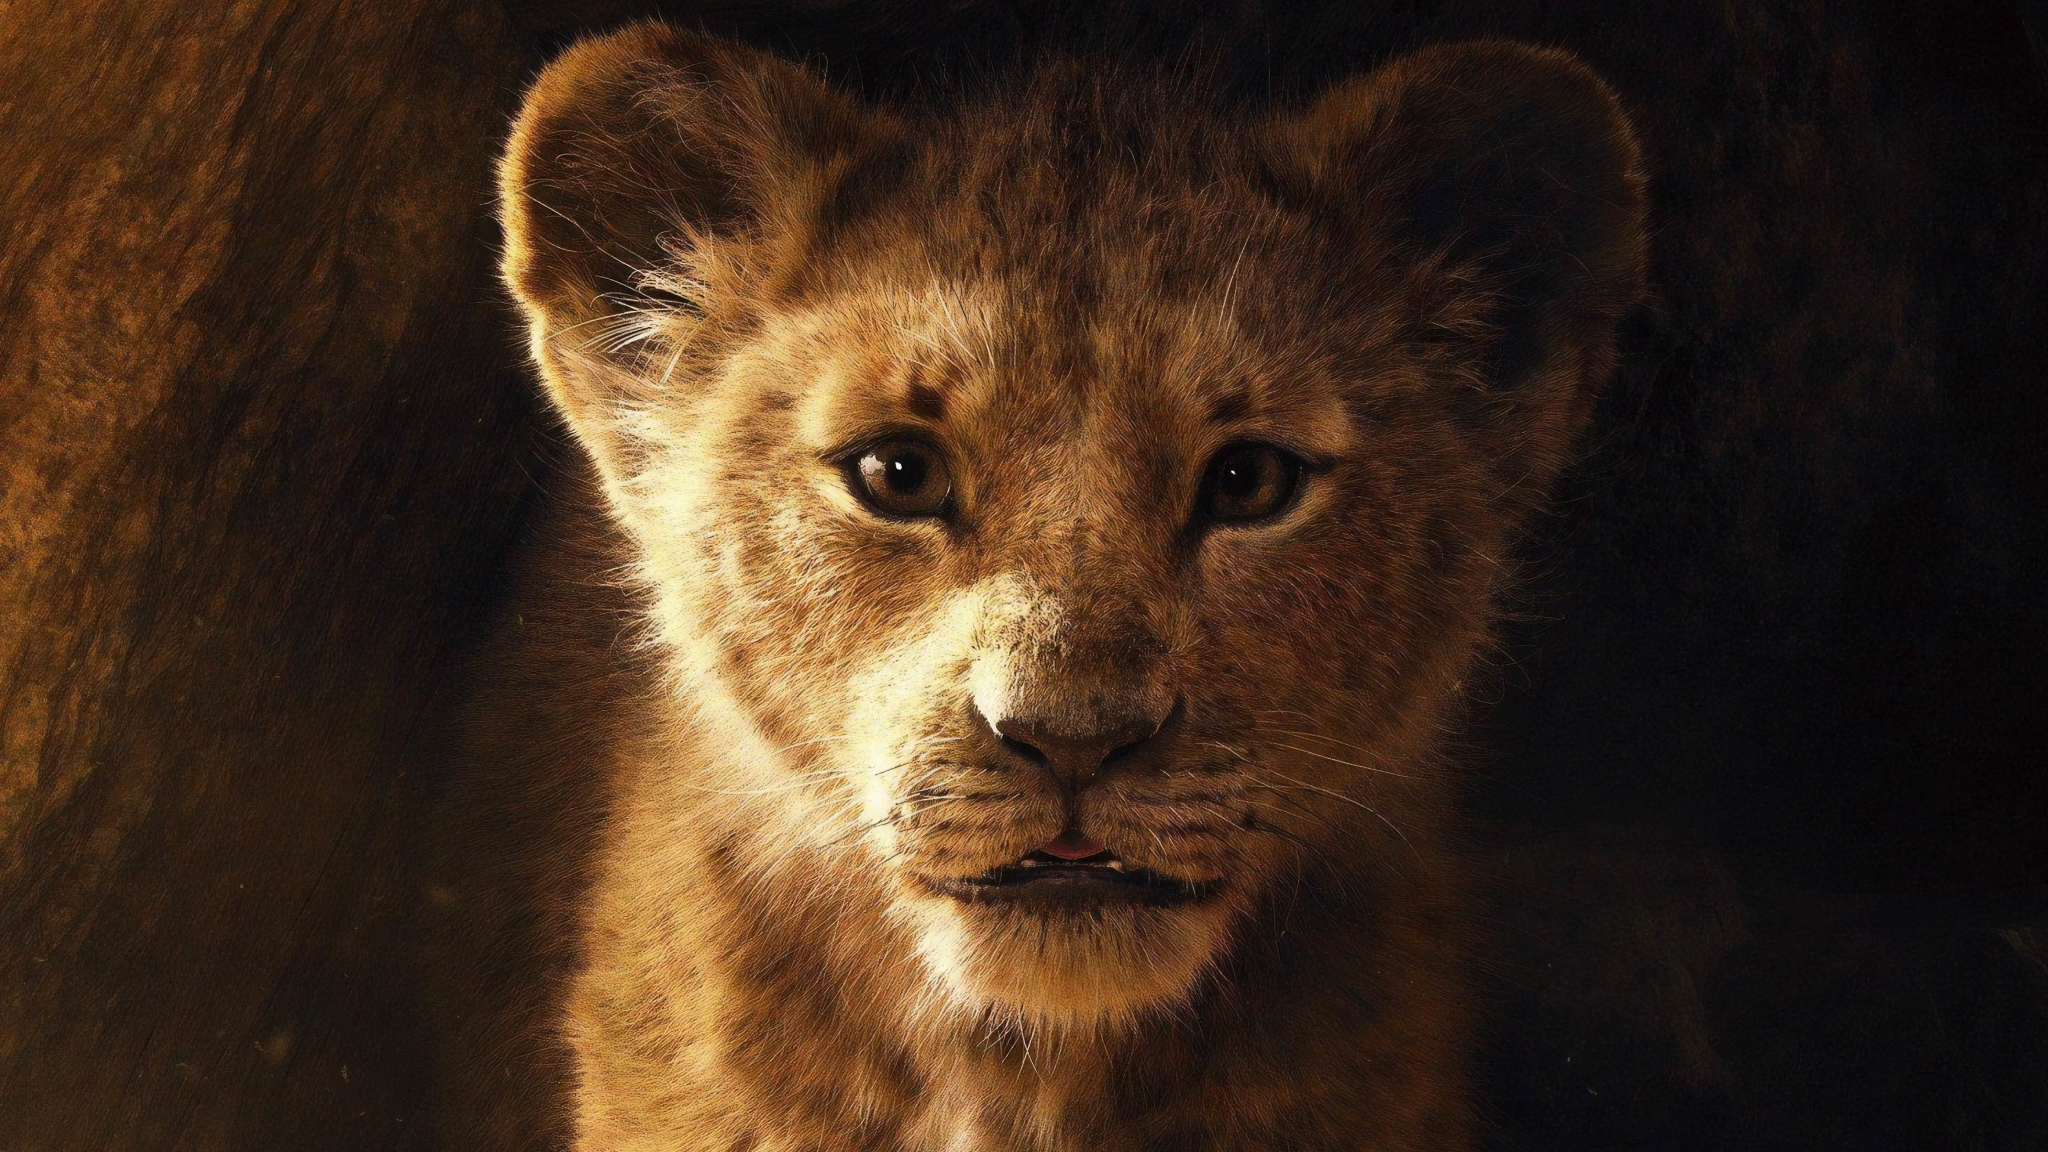 Download The Lion King 2019 Movie Poster 800x600